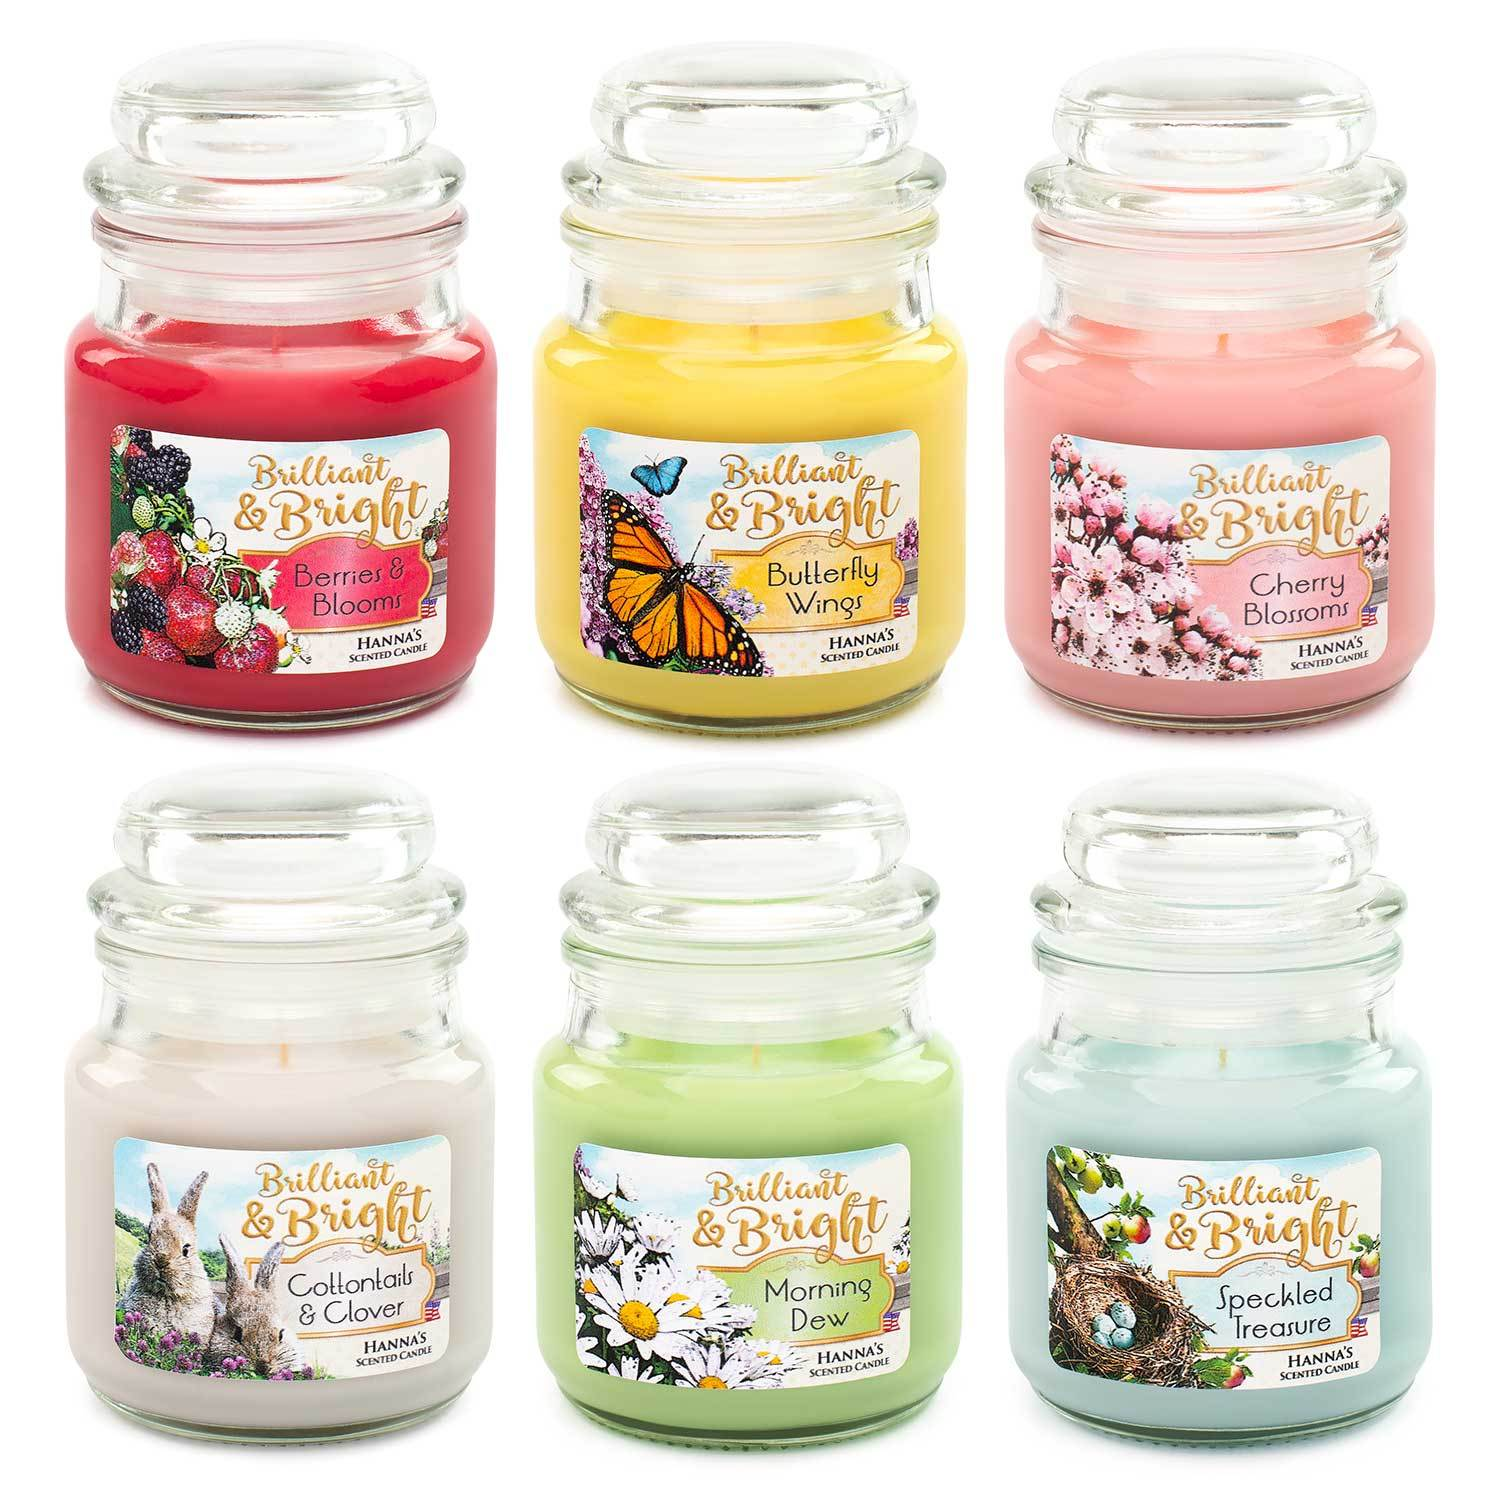 Speckled Treasure Scented Mini Candle